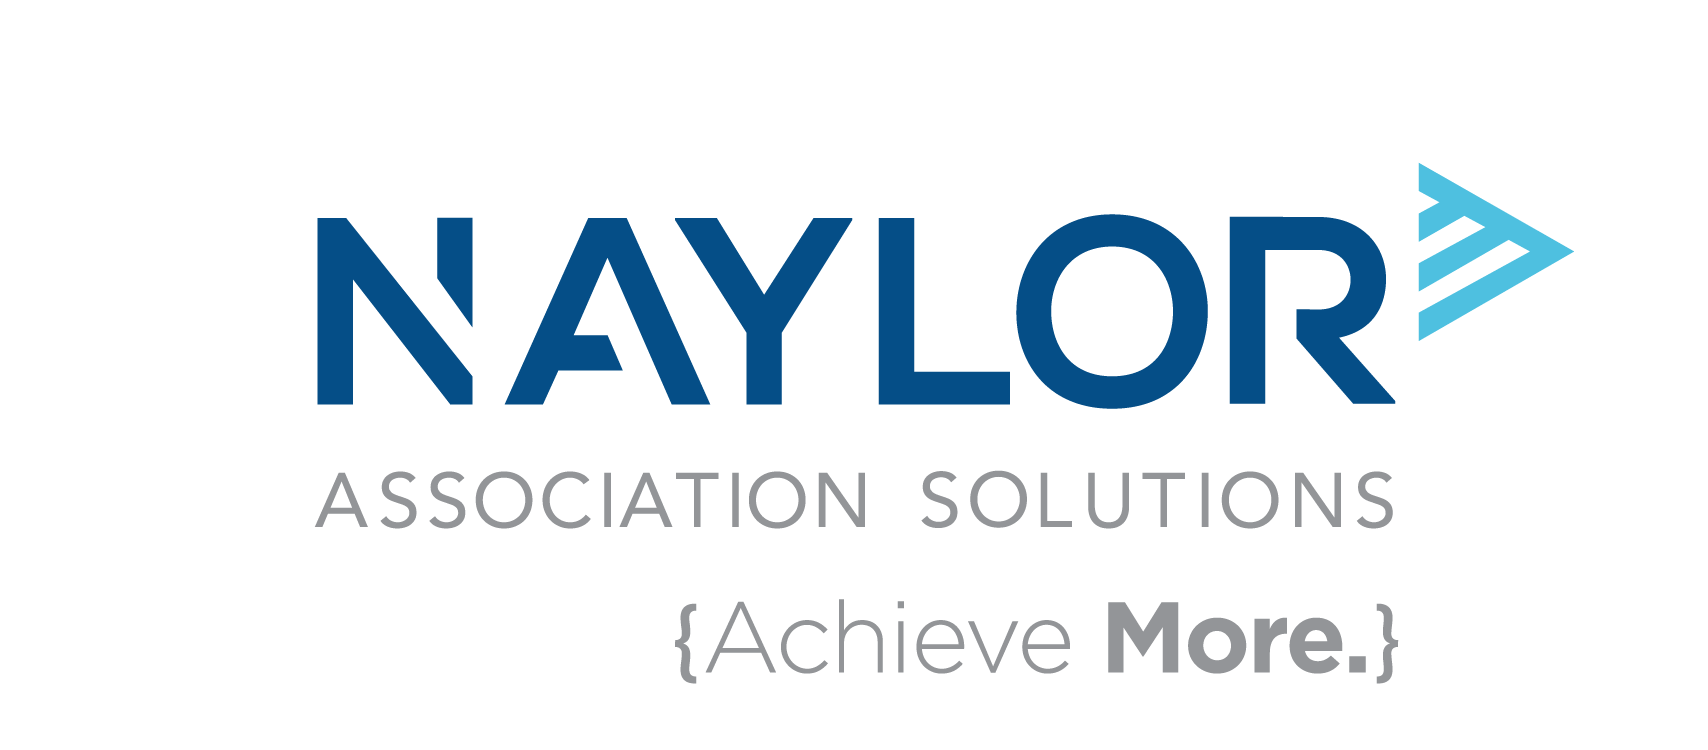 Naylor Logo with AchieveMore - RGB.png